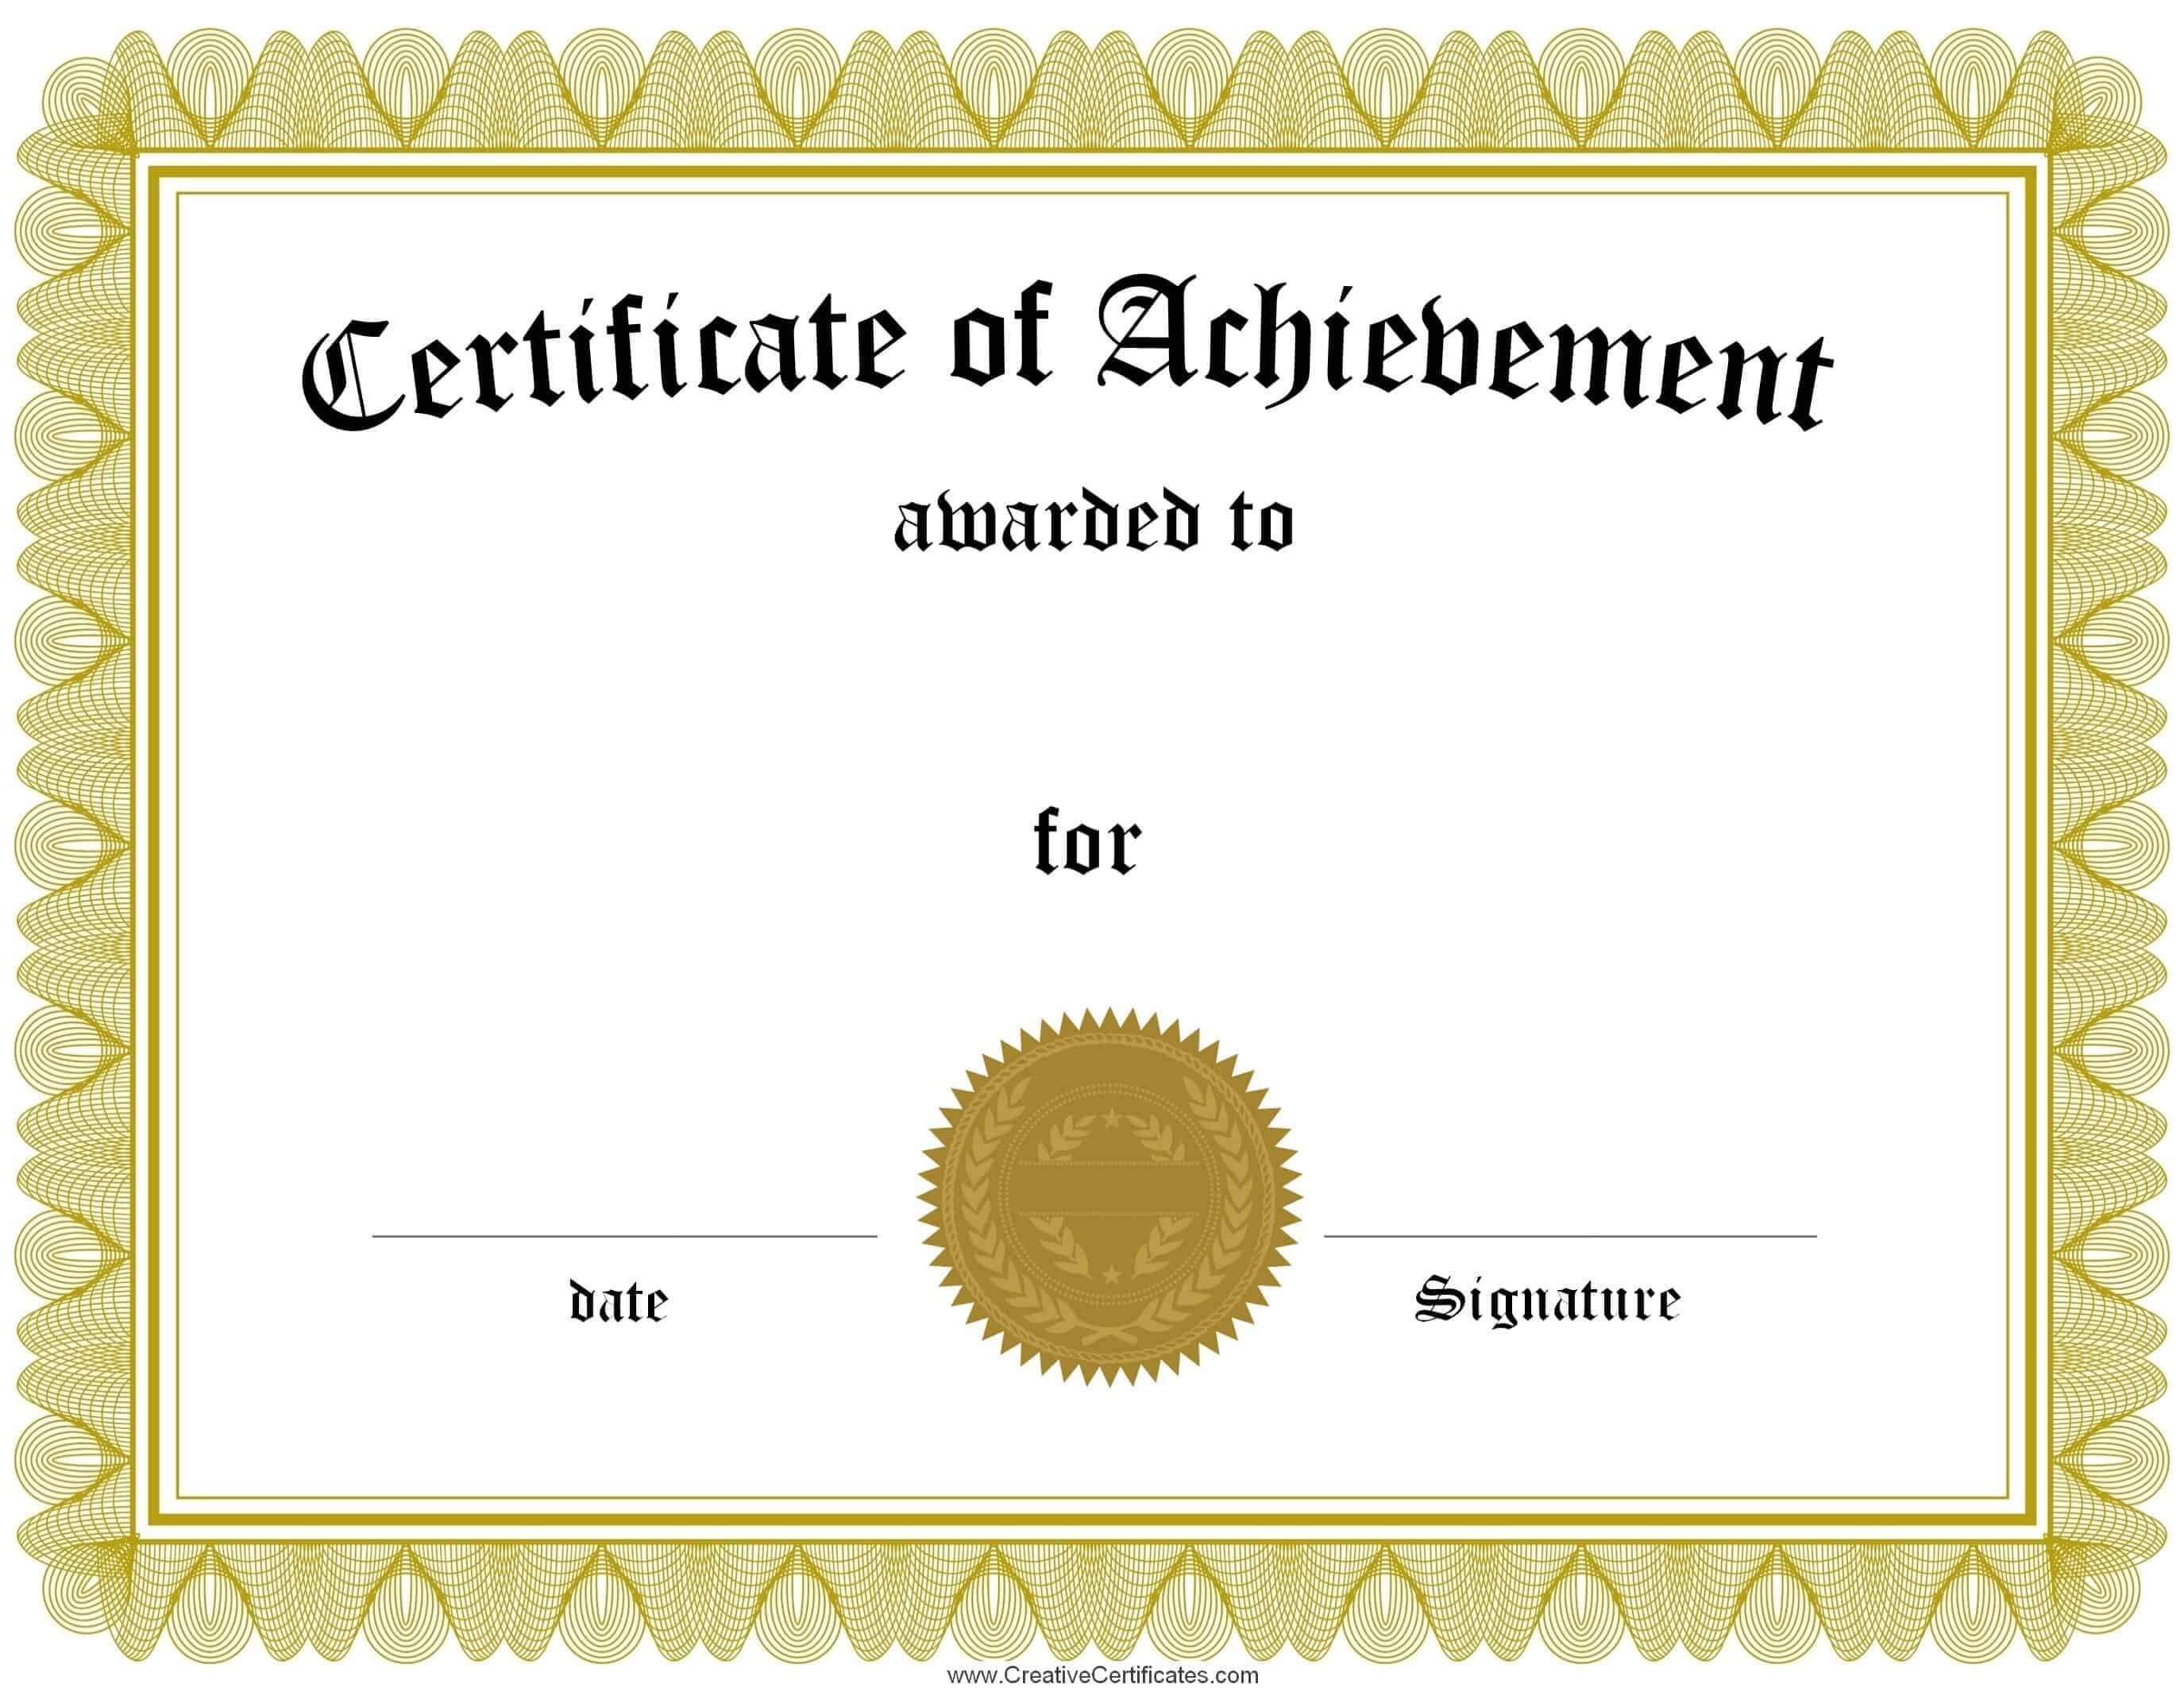 Free Printable Certificate Of Achievement Word Template inside Certificate Of Achievement Template Word